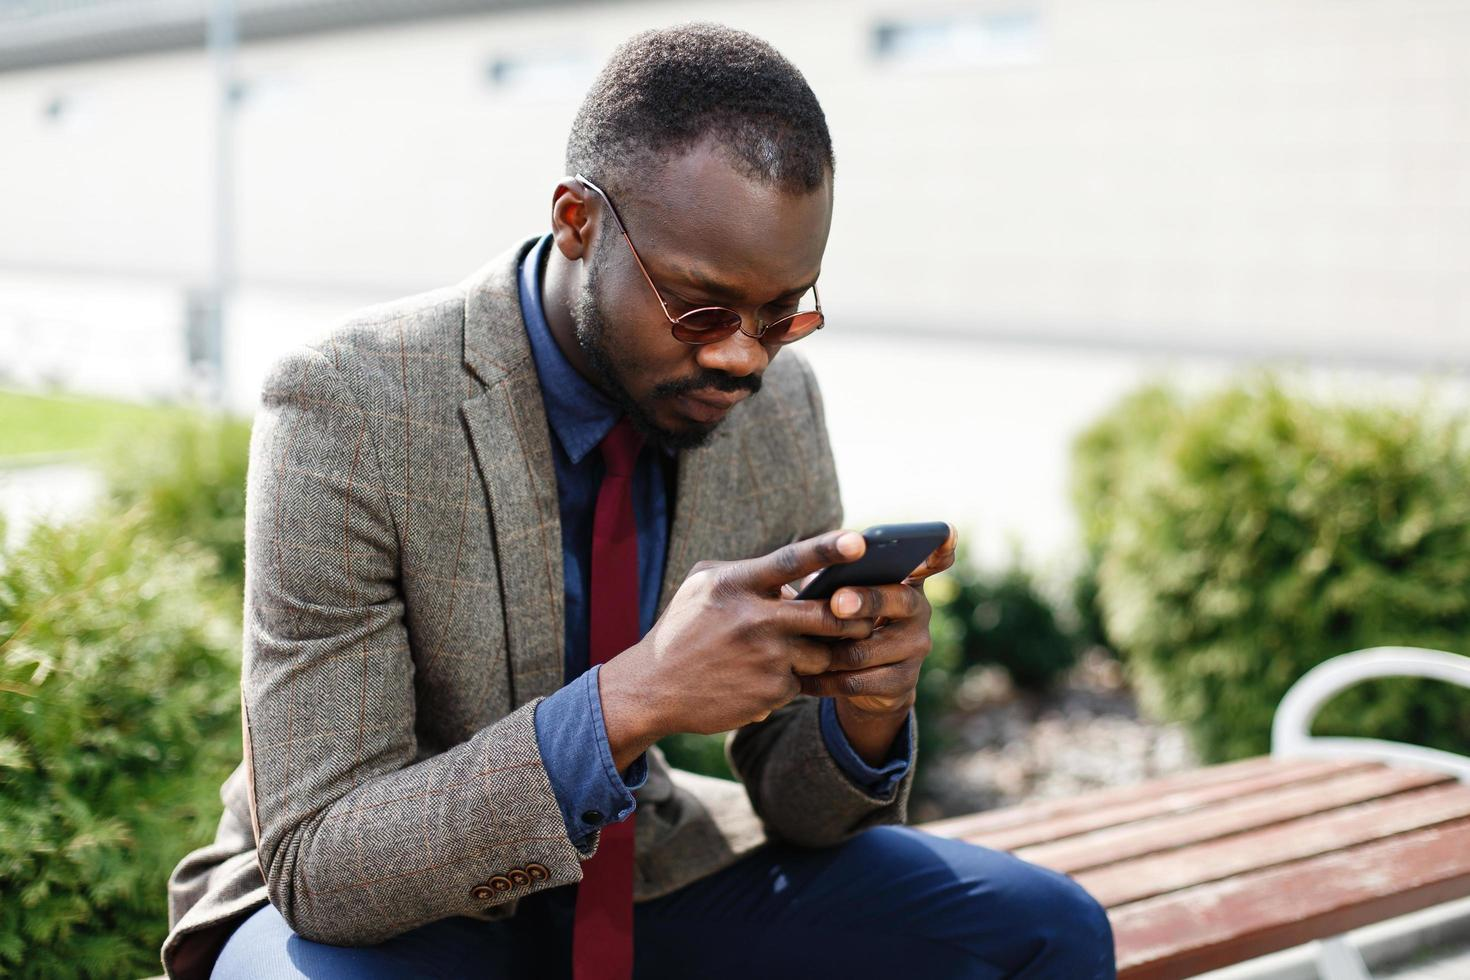 African American business man works in his smartphone sitting on the bench outside photo